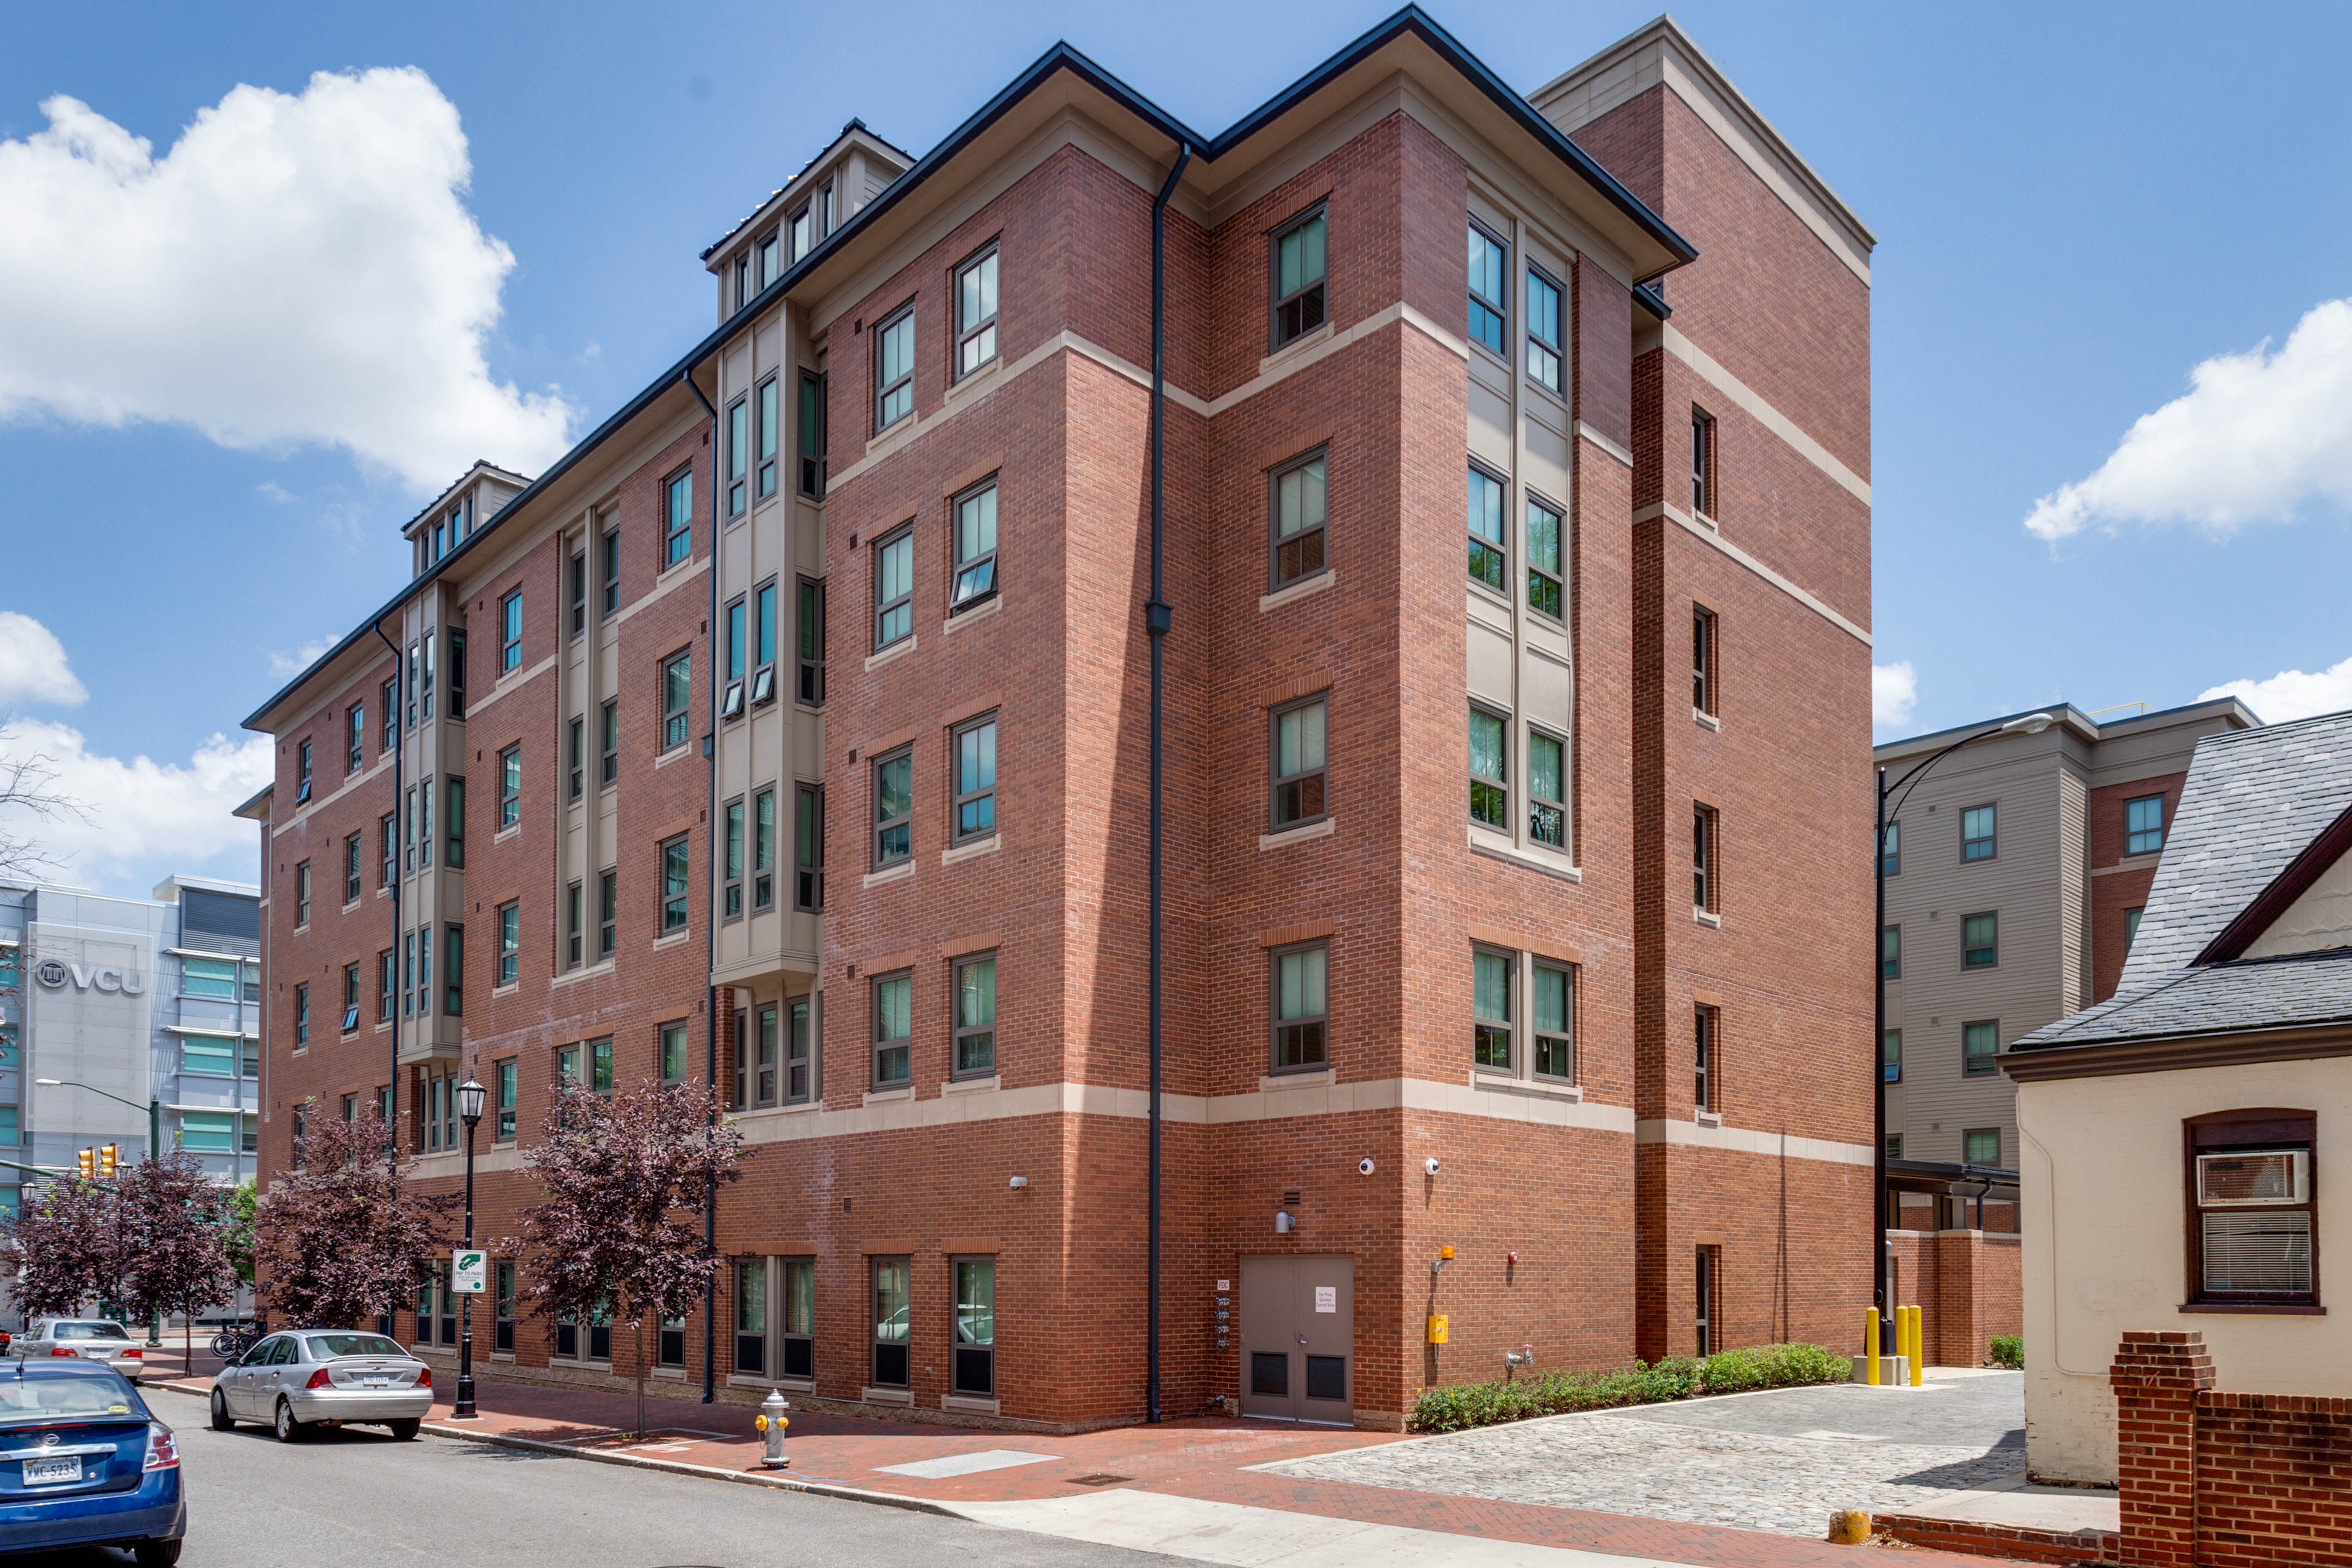 Vcu Dorms Pictures to Pin on Pinterest - ThePinsta